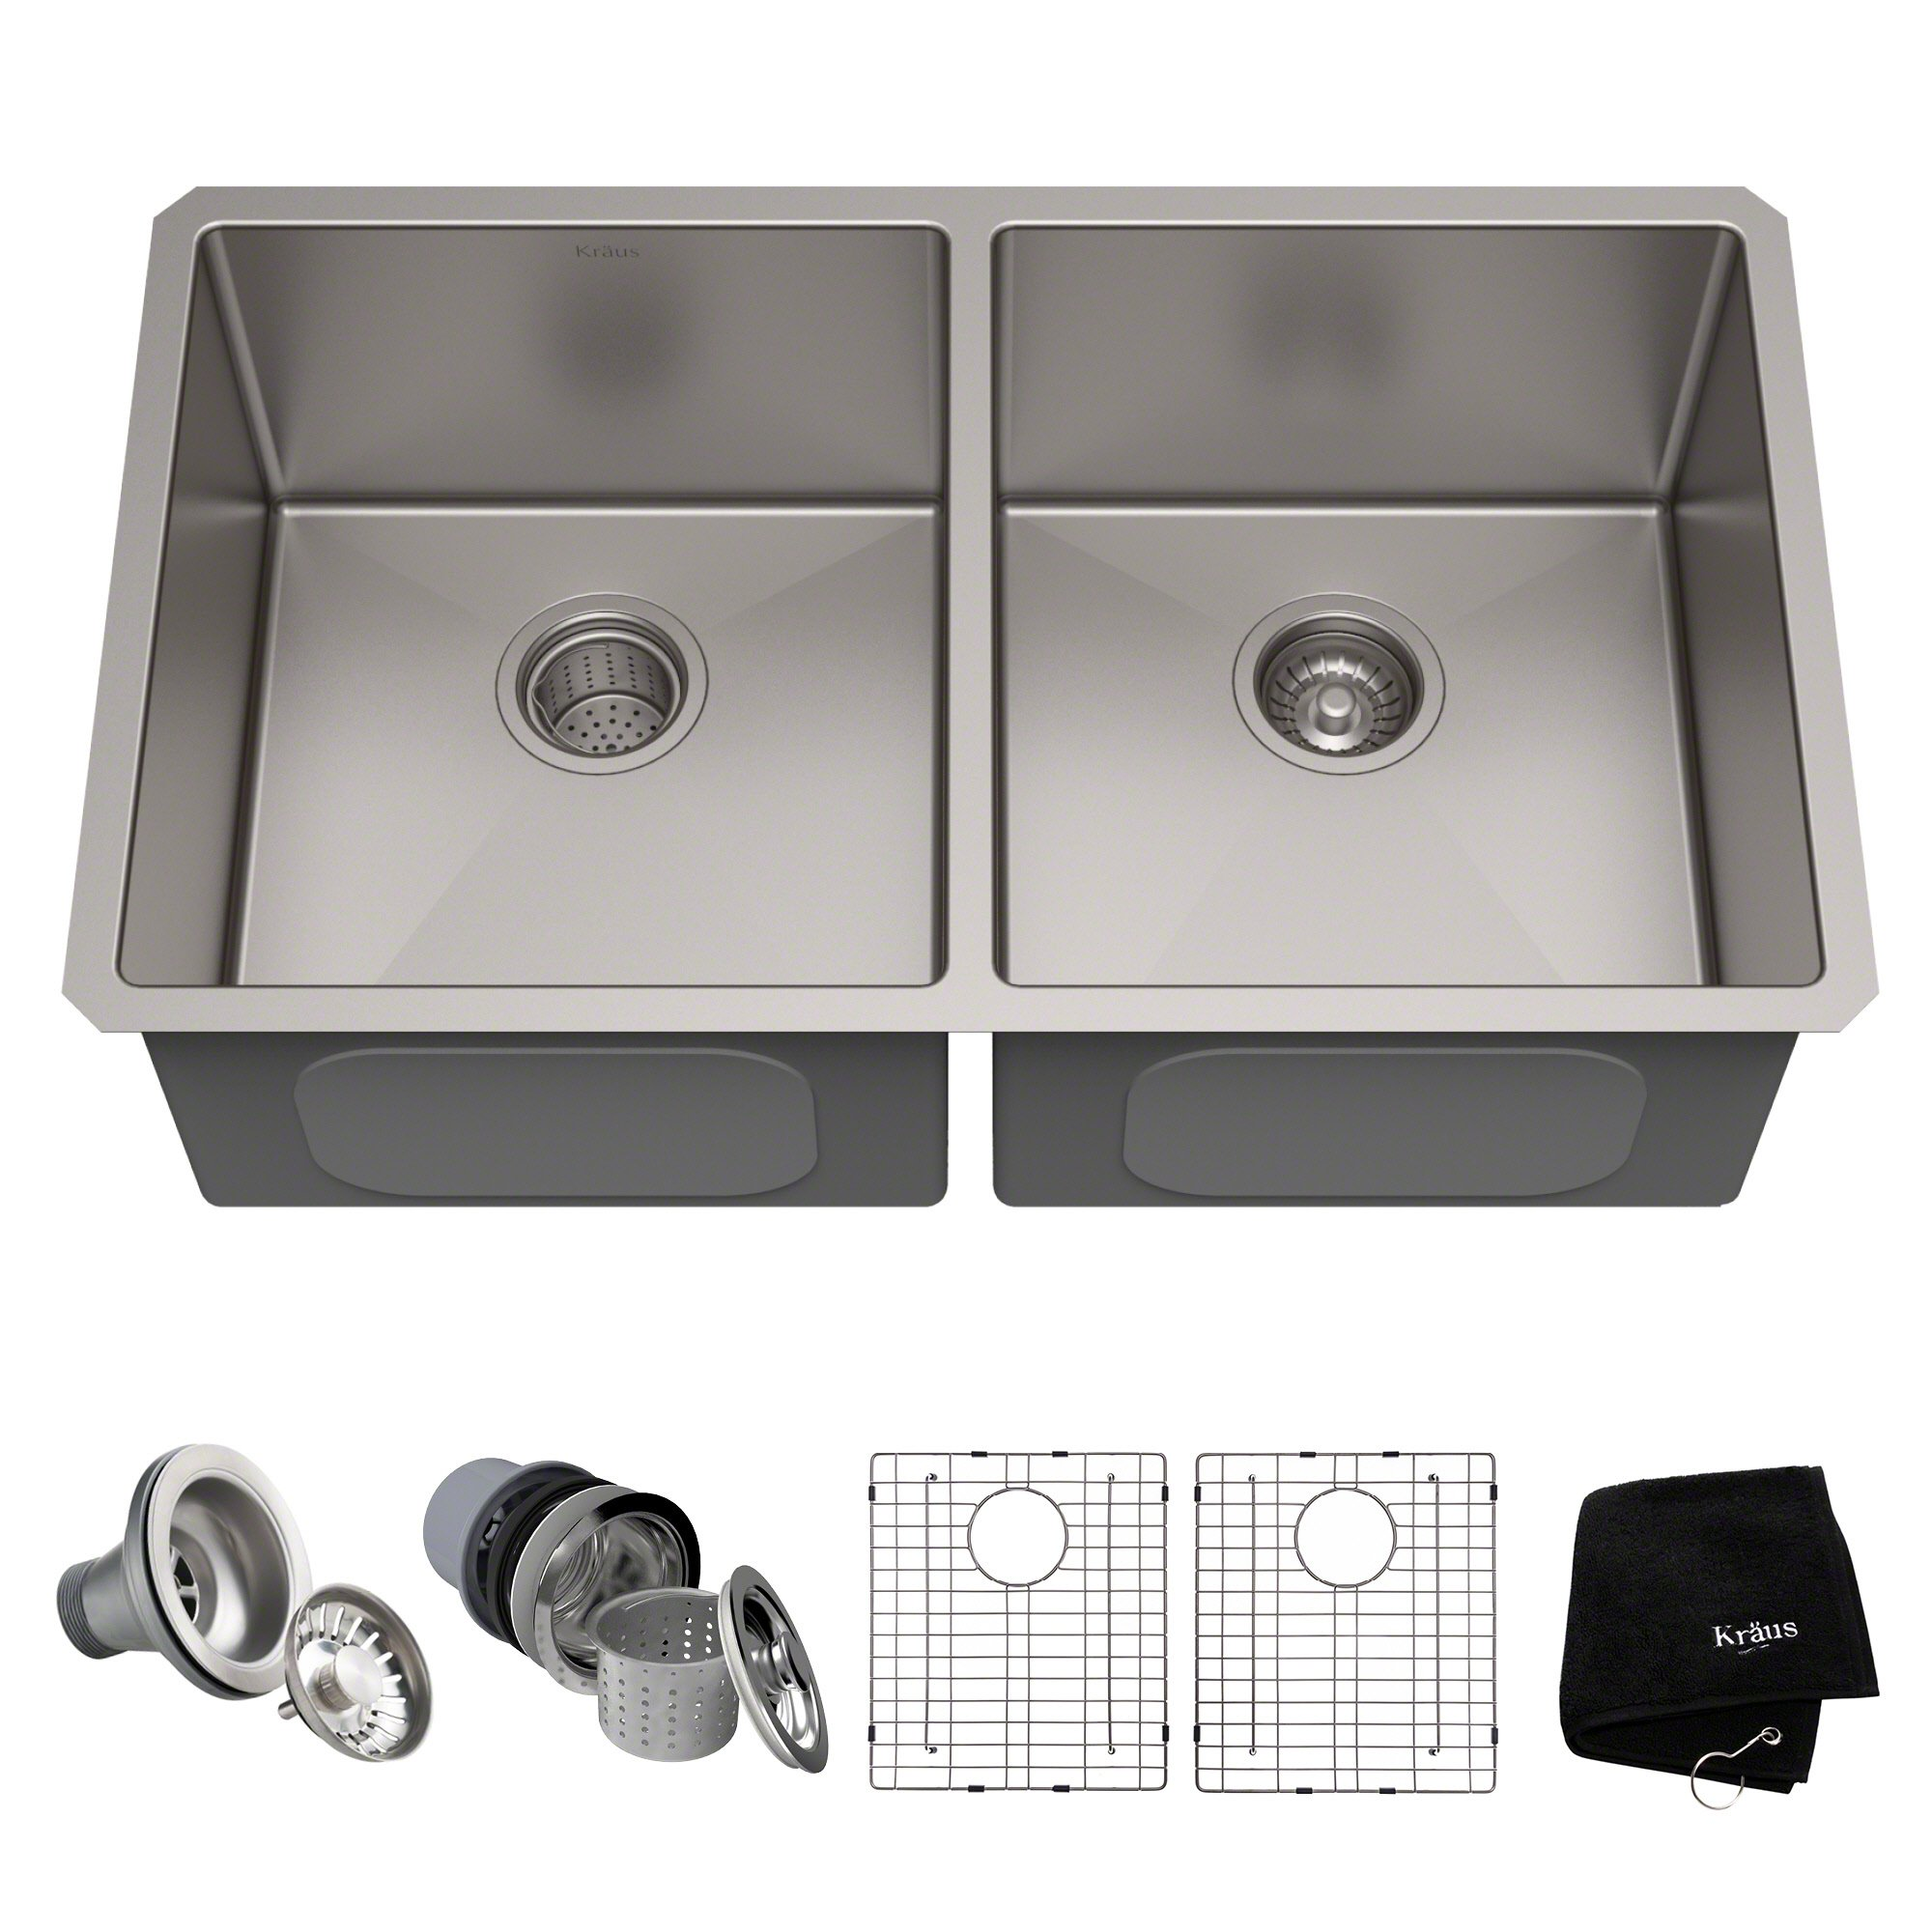 Kraus Standart PRO 33-inch 16 Gauge Undermount 50/50 Double Bowl Stainless Steel Kitchen Sink, KHU102-33 by Kraus